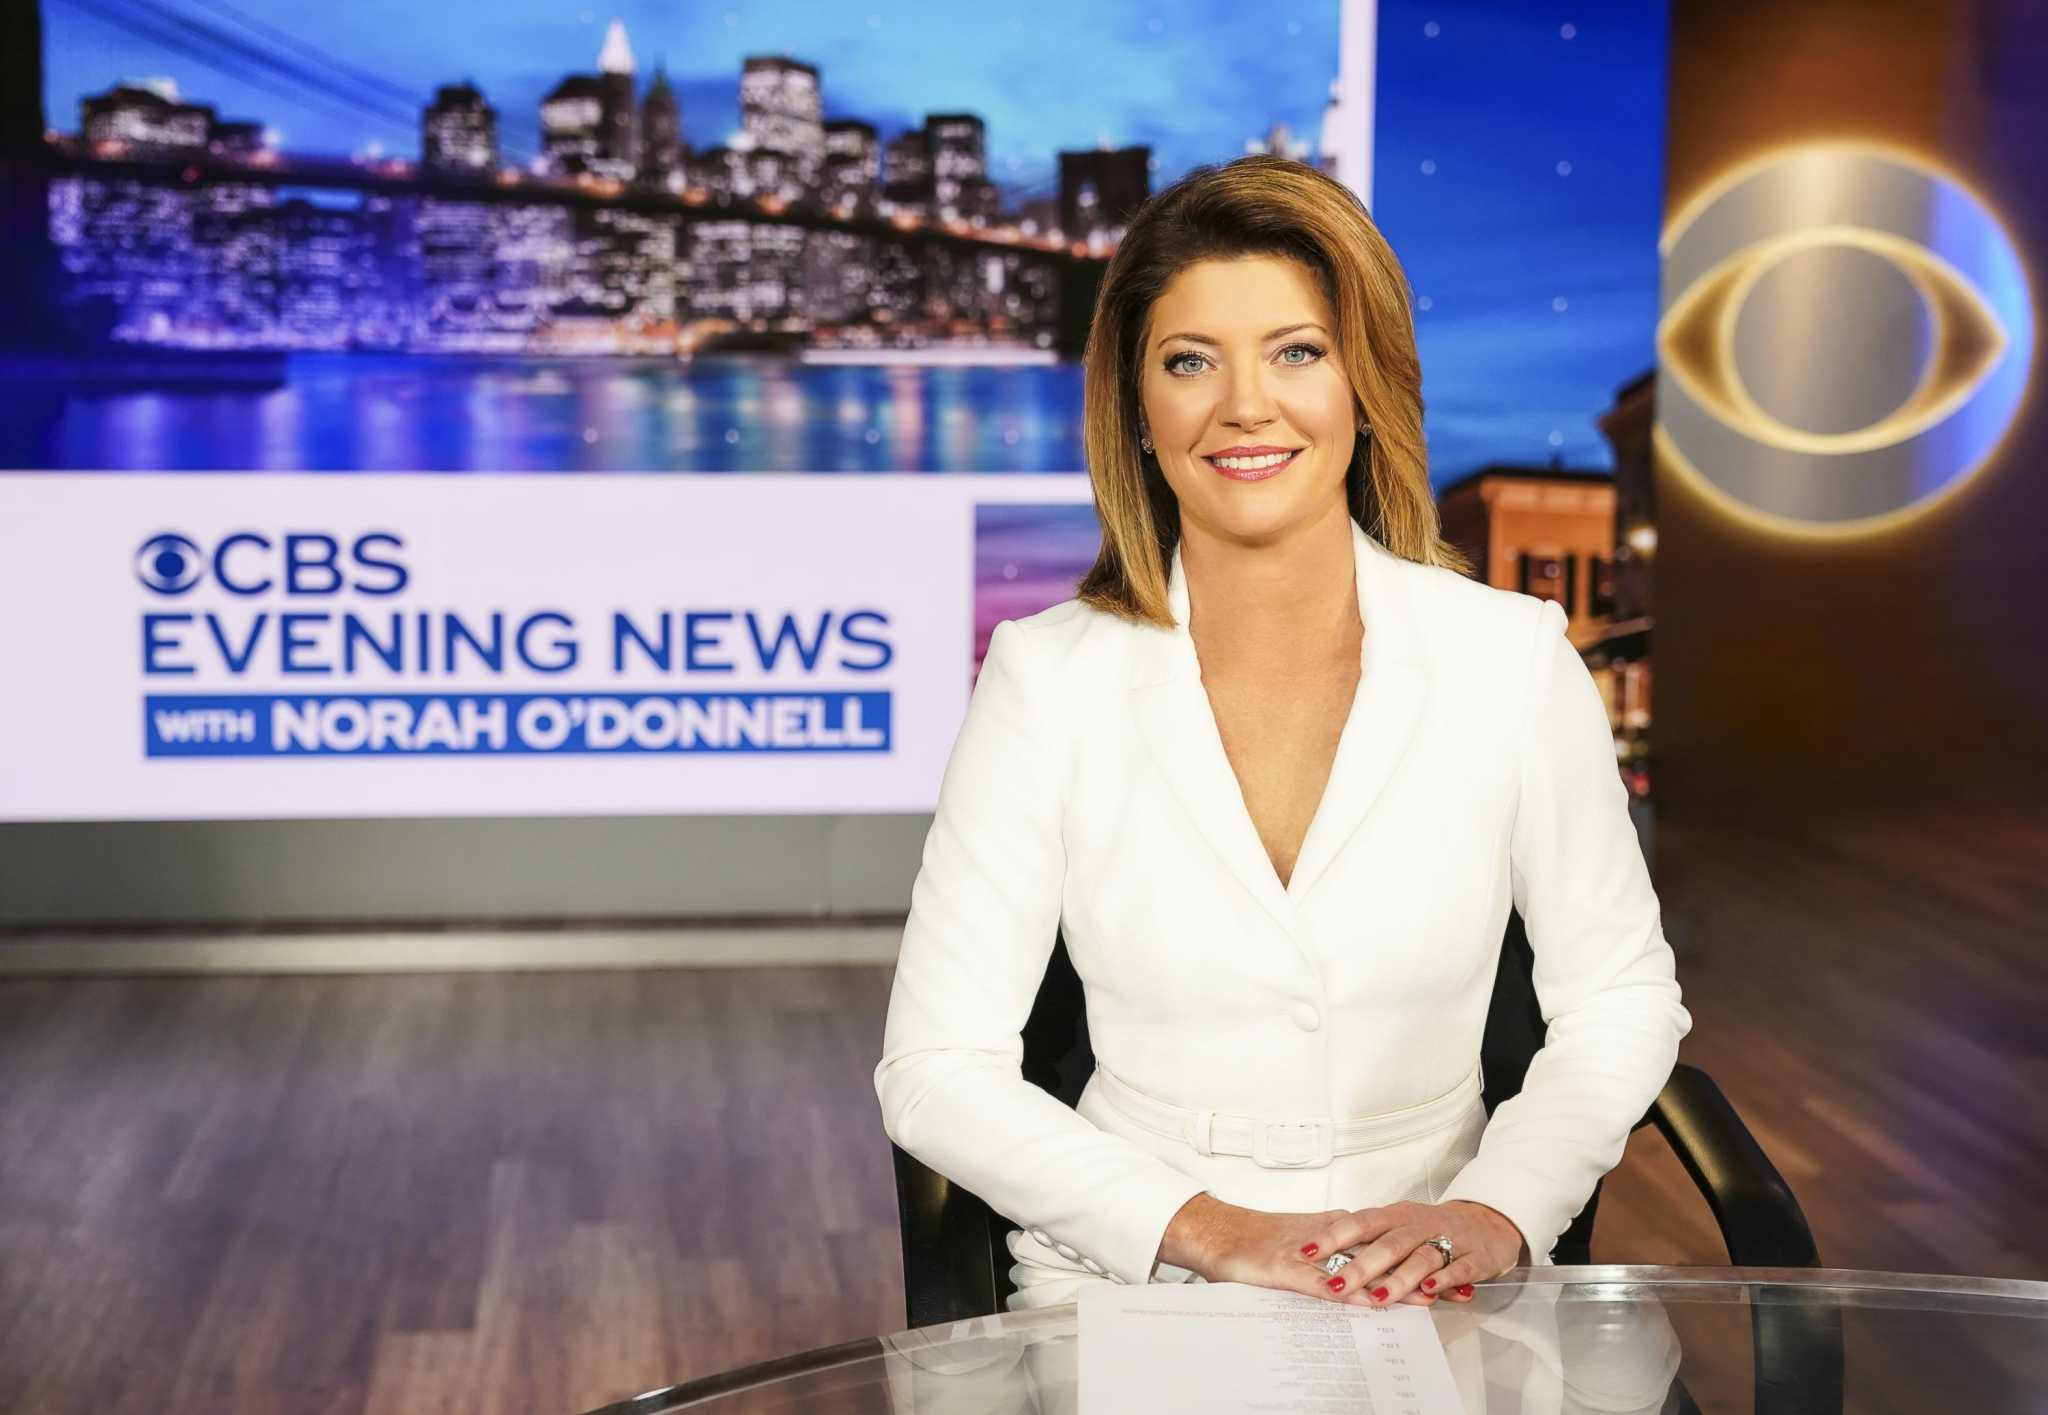 Norah O'Donnell takes over CBS Evening News on a historic week